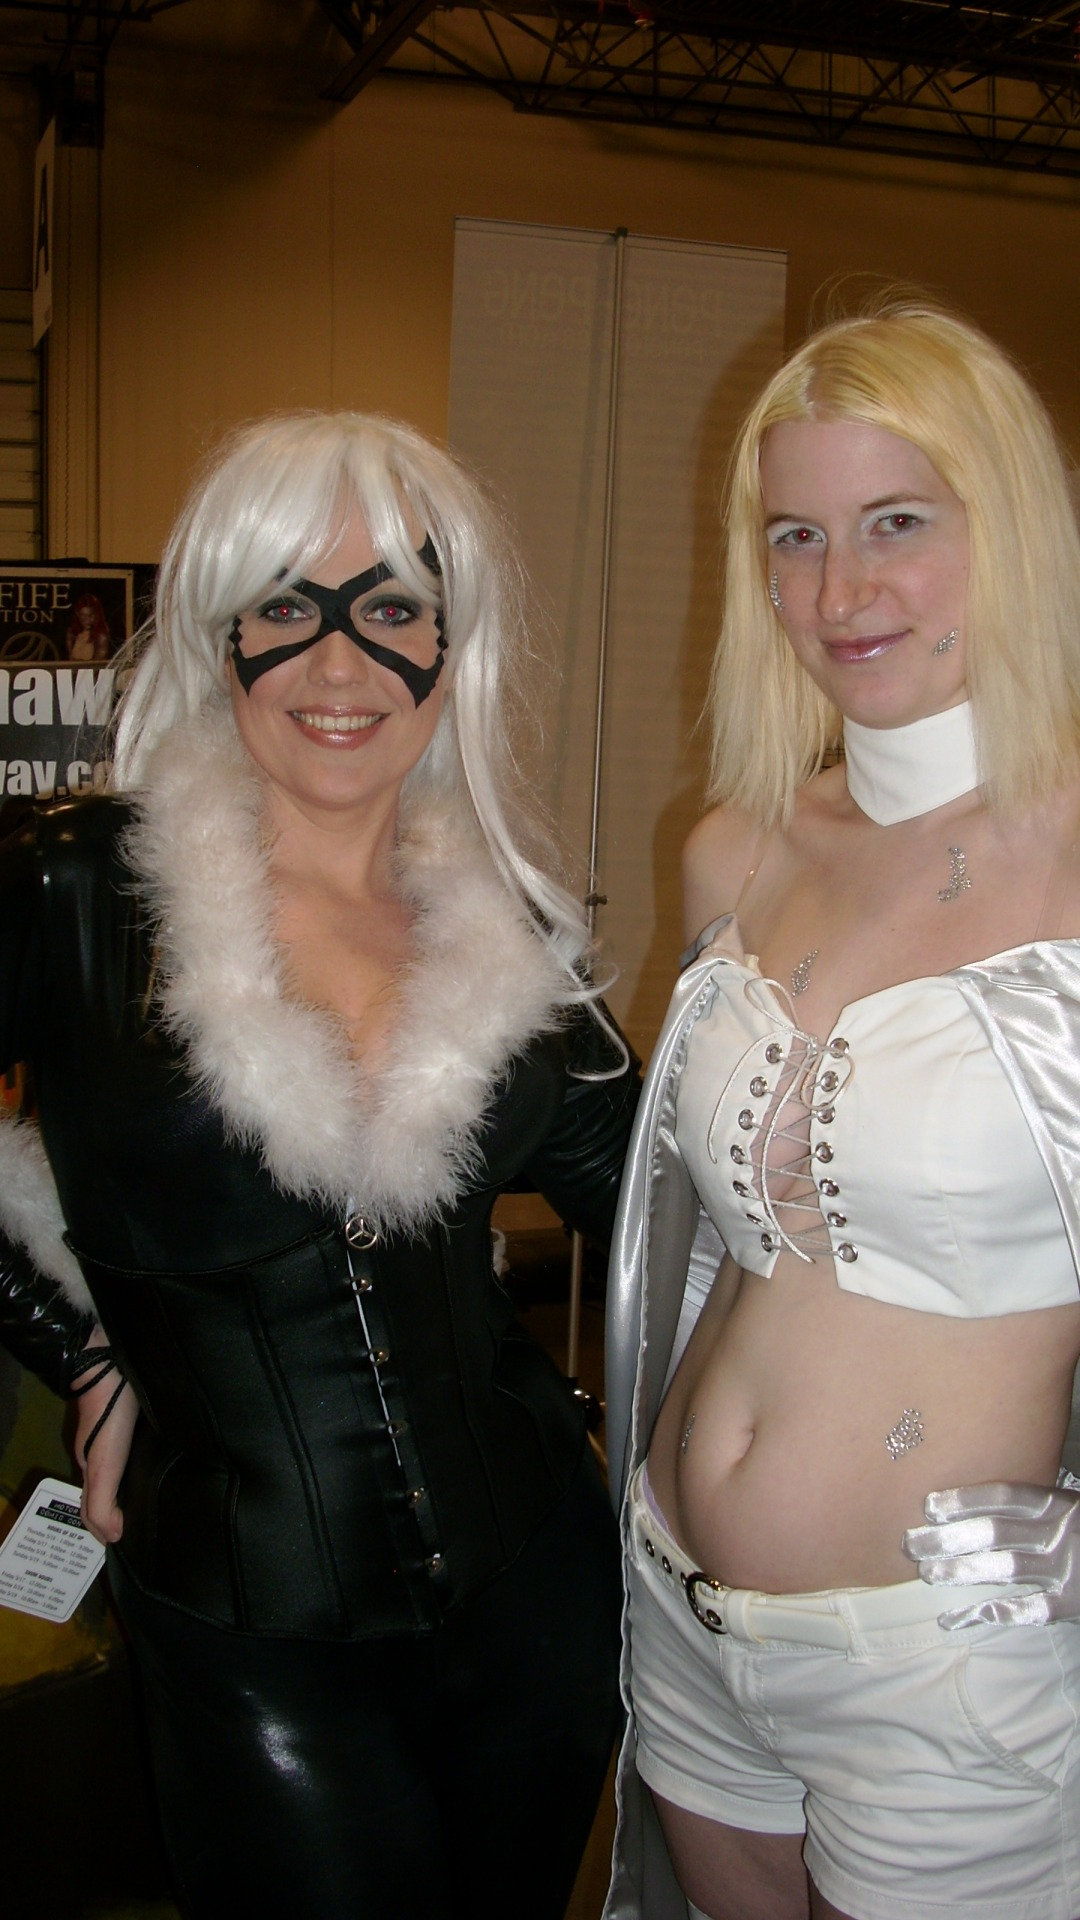 Some of my favorites from Motor City Comic Con Day 2!  Hercules, Black Cat, Power Girl, Lego Boba Fett, Link, Zelda, Fionna, Finn, Echo, Goliath, Hawkeye, and Darth Vader! Such a fun day today! Can't wait for tomorrow when I get to be Fionna the Human!